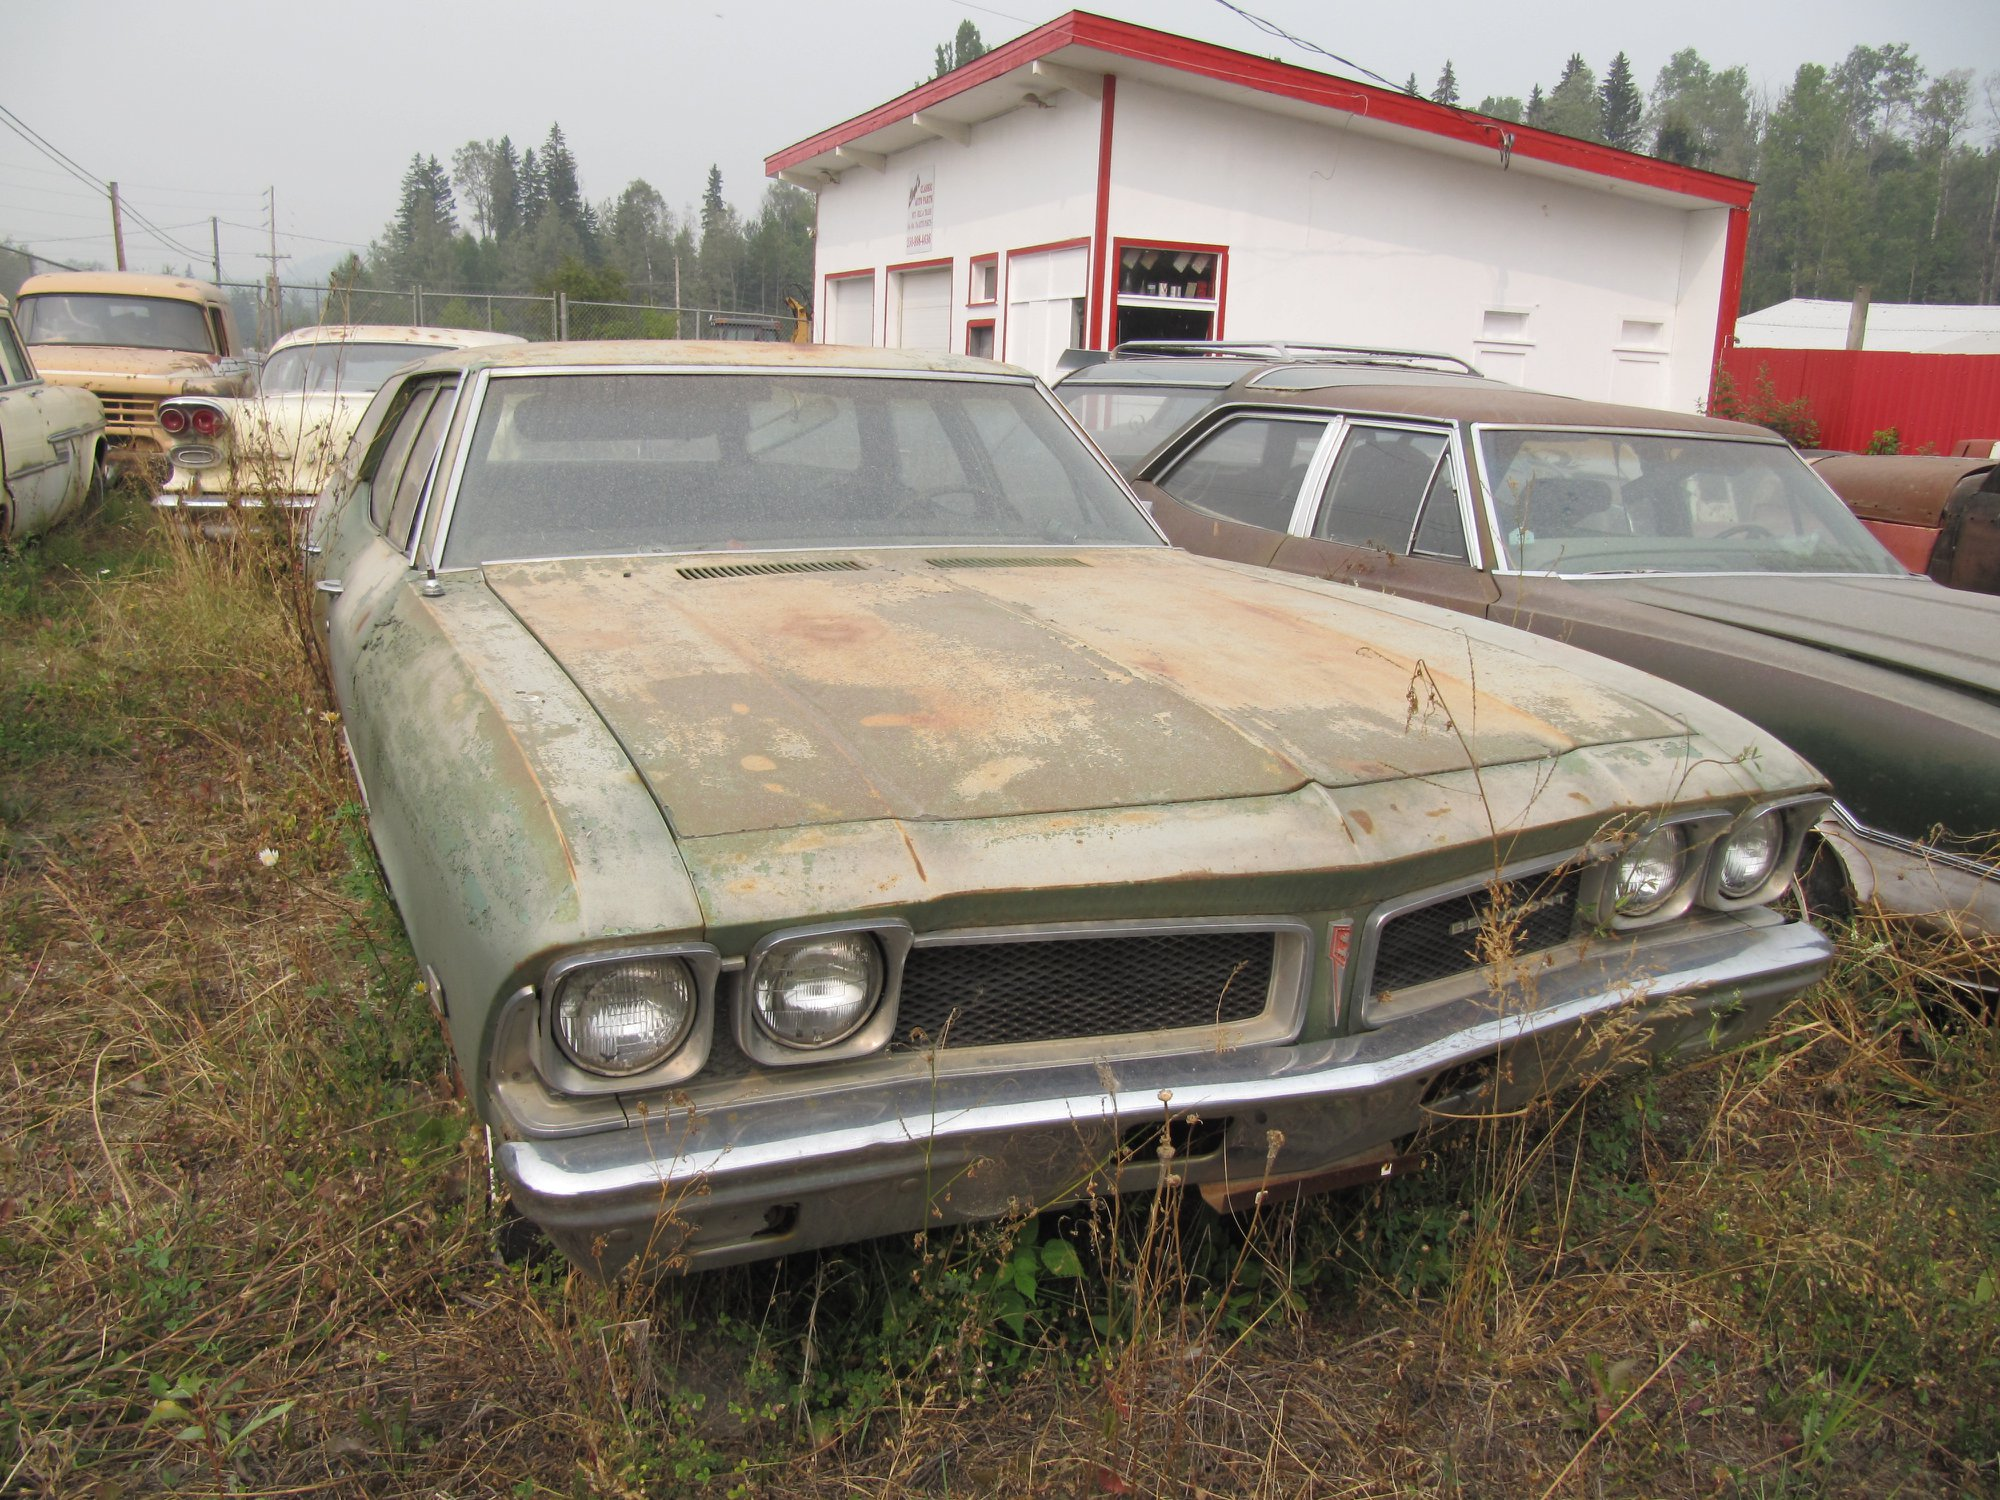 Chris-Kempling---Hit-the-rusty-diamond-jackpot--Classic-Auto-Parts-in-Hixon--BC-8